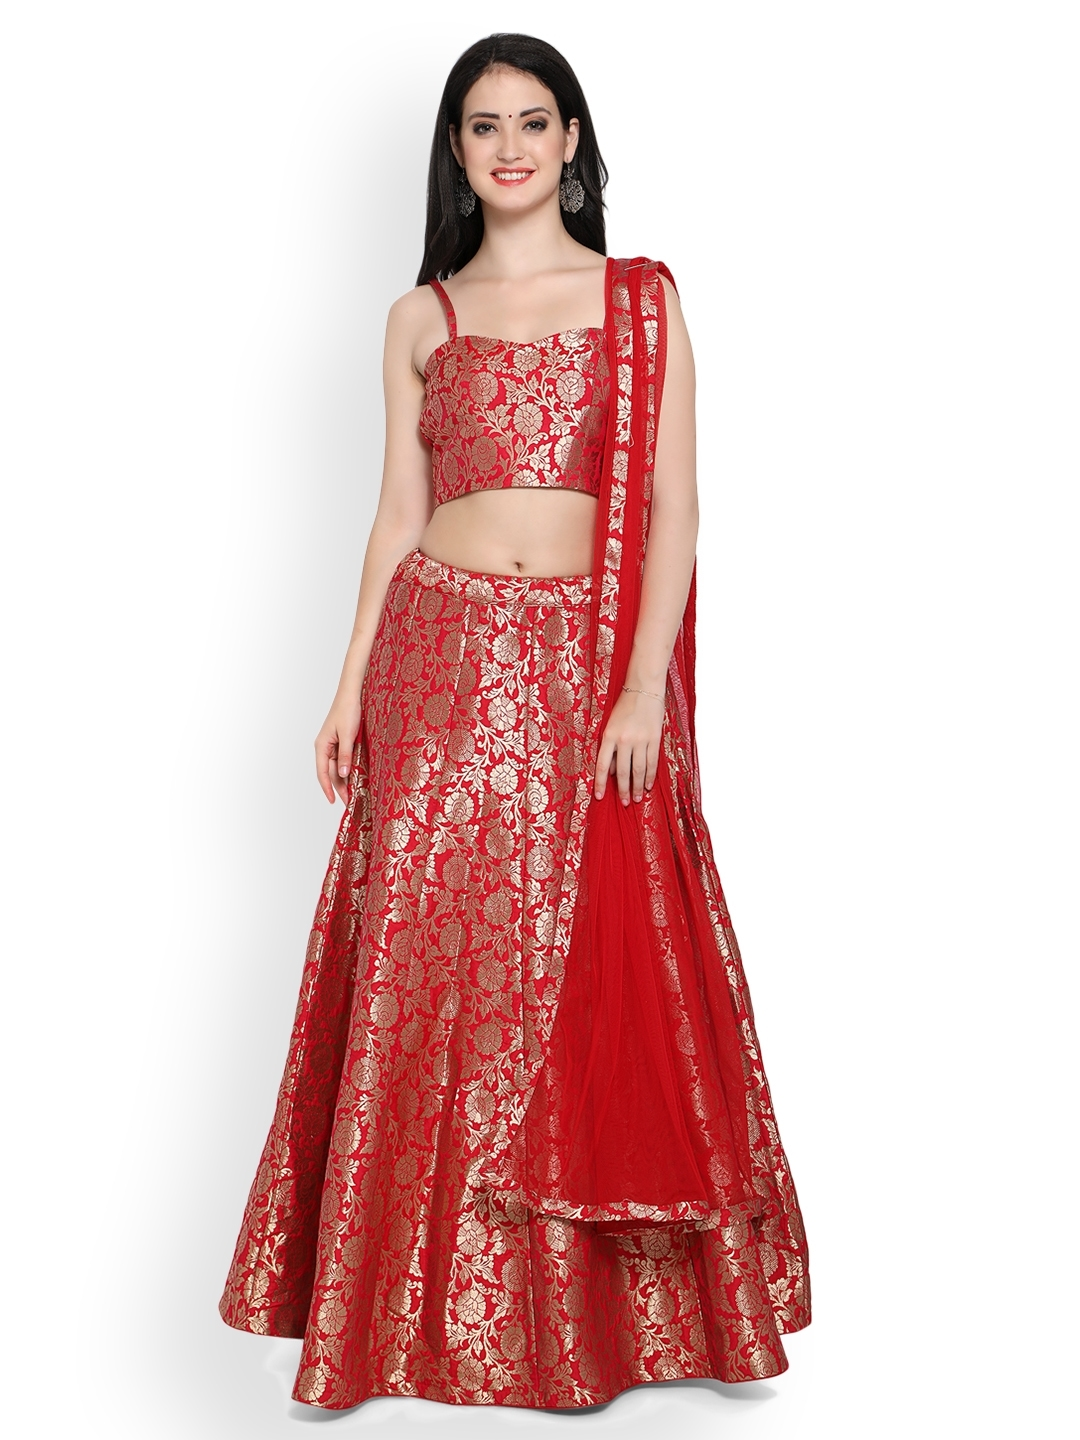 0163eb3a68e Buy Induss Red Semi Stitched Lehenga Choli - Lehenga Choli for Women ...